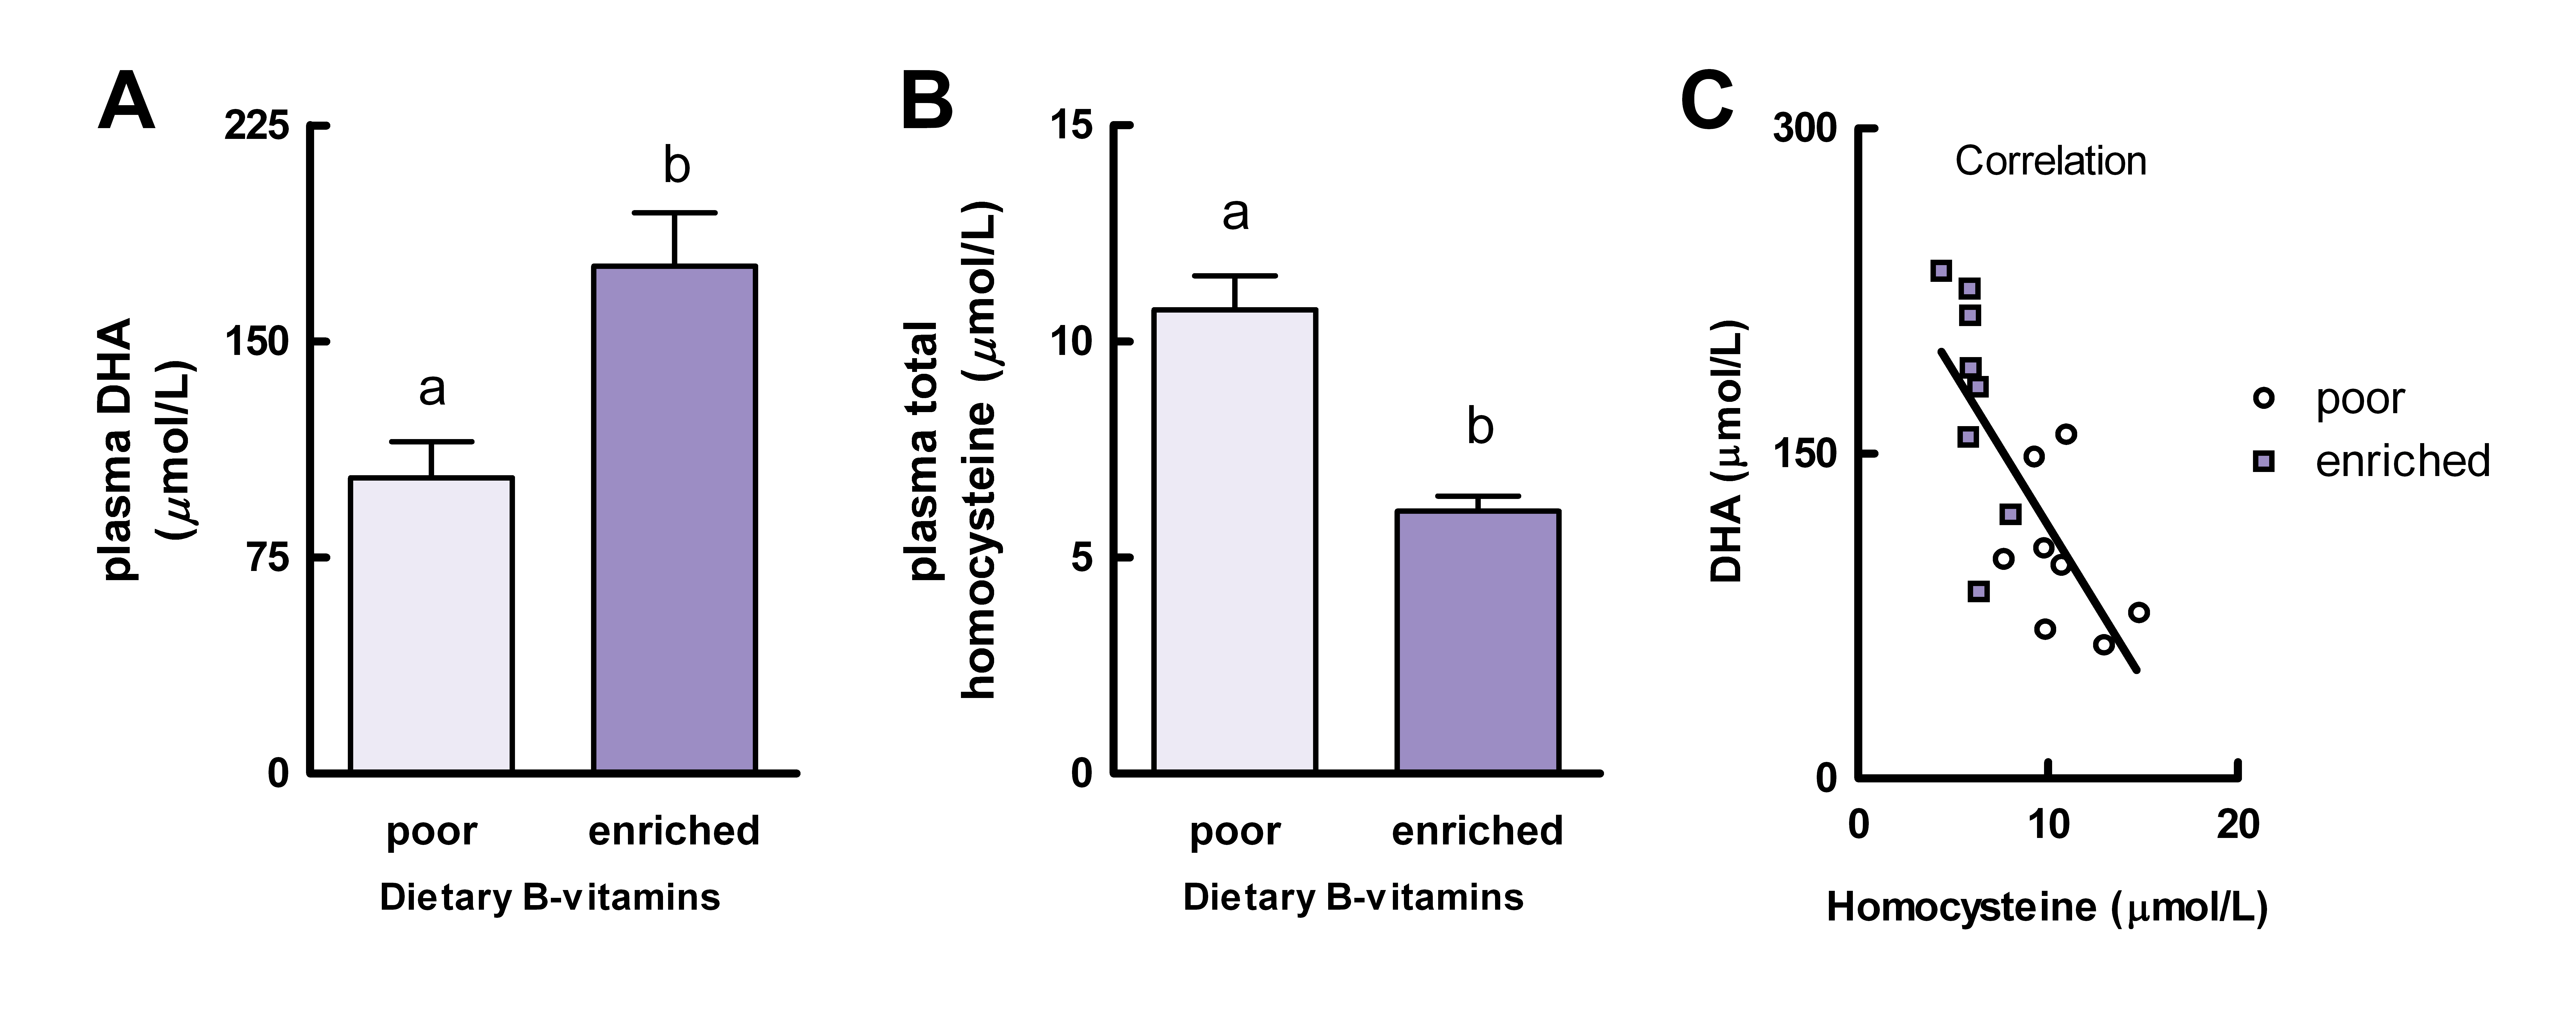 vitamin b12 research papers Rusher dr, pawlak r (2013) a review of 89 published case studies of vitamin b12 deficiency j hum nutr food sci 1(2): 1008 case studies of vitamin b12.